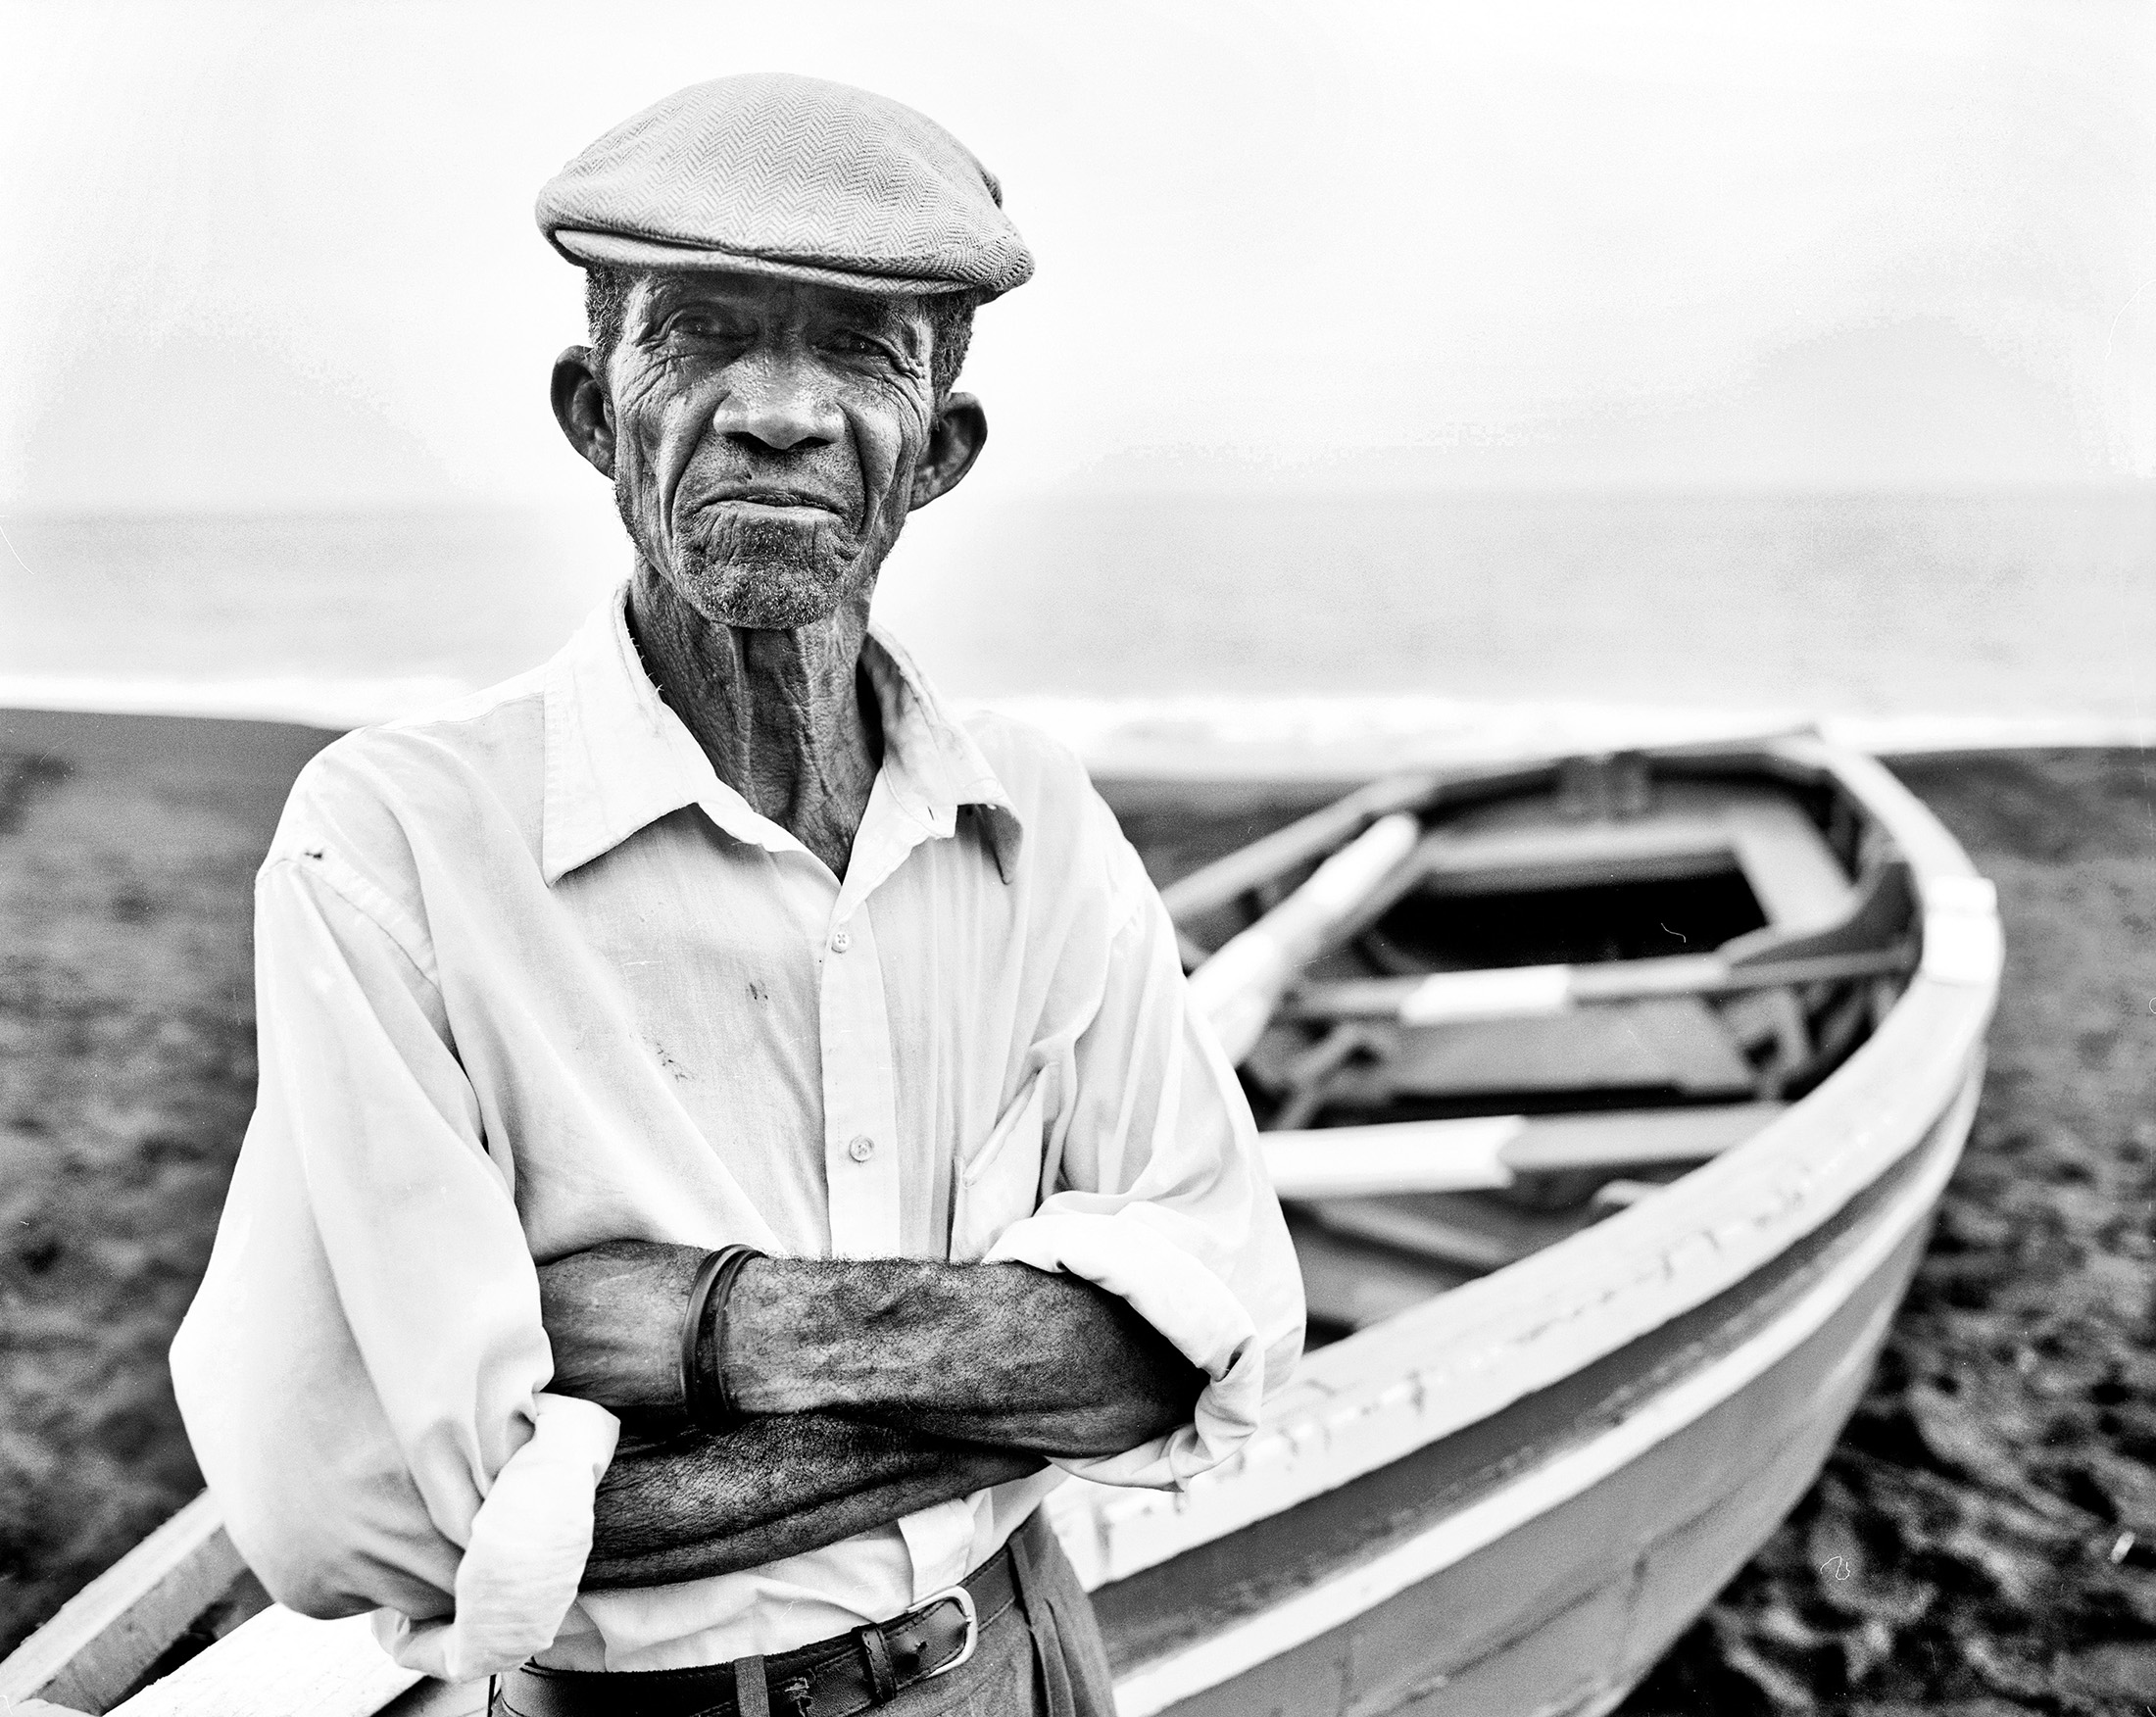 Fisherman in front of his boat on the beach of Sao Filipe